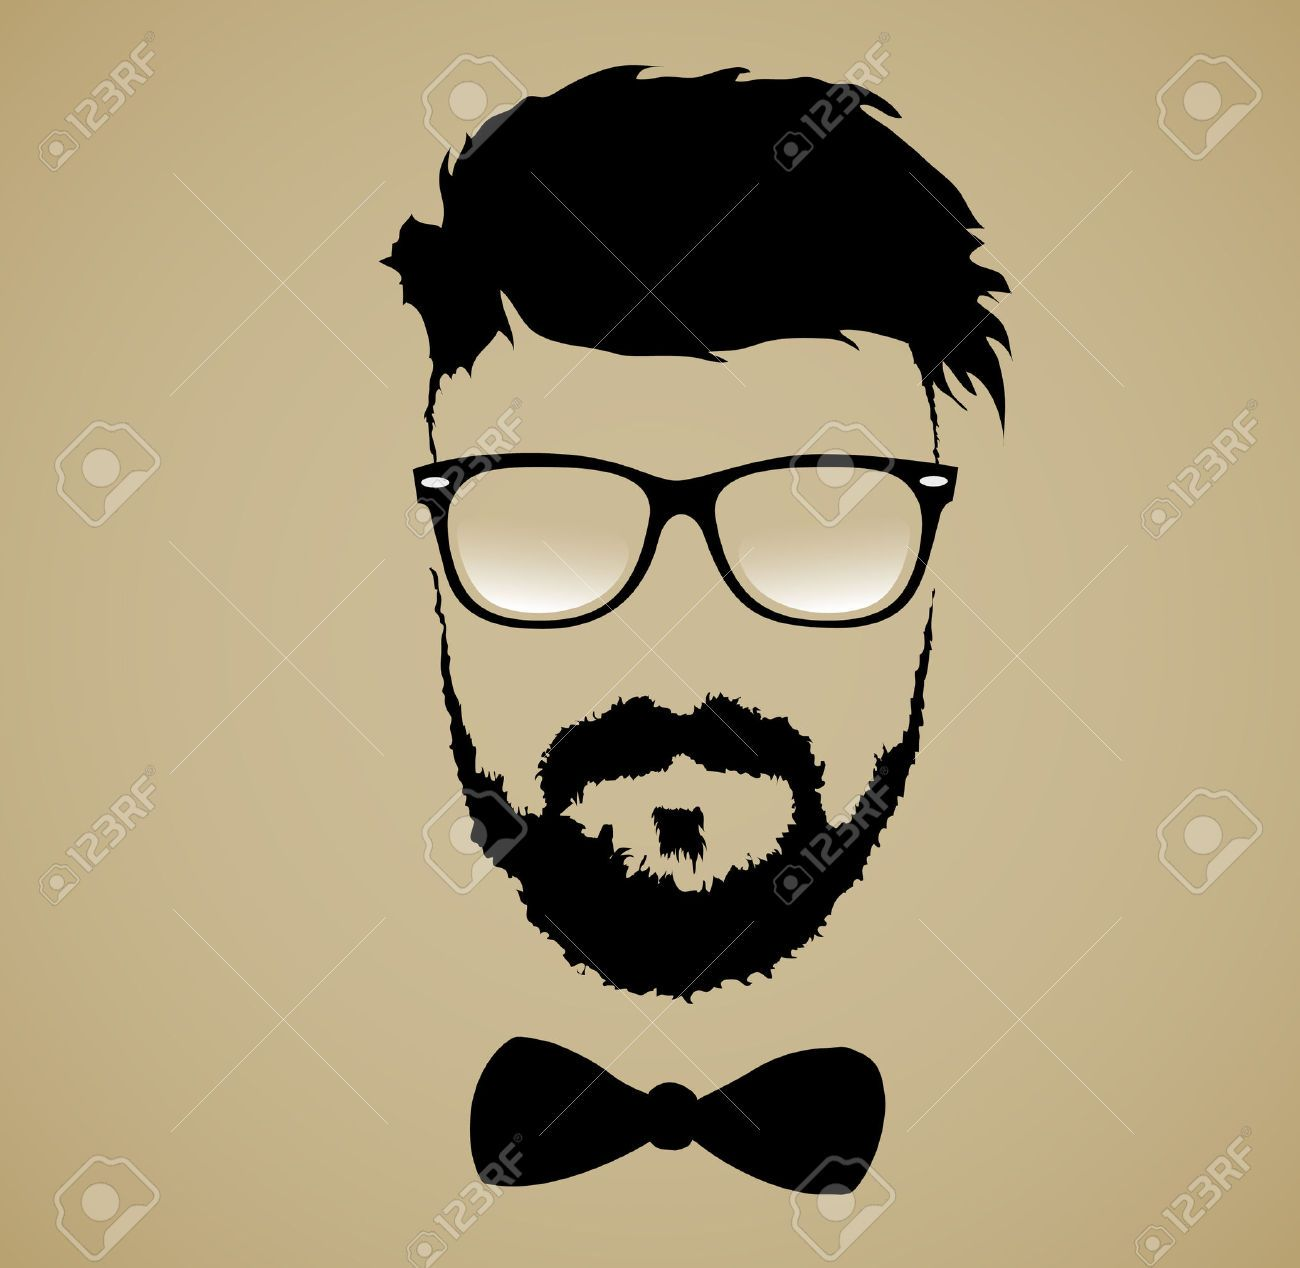 Sunglasses clipart beard boy. Mustache glasses hairstyle royalty